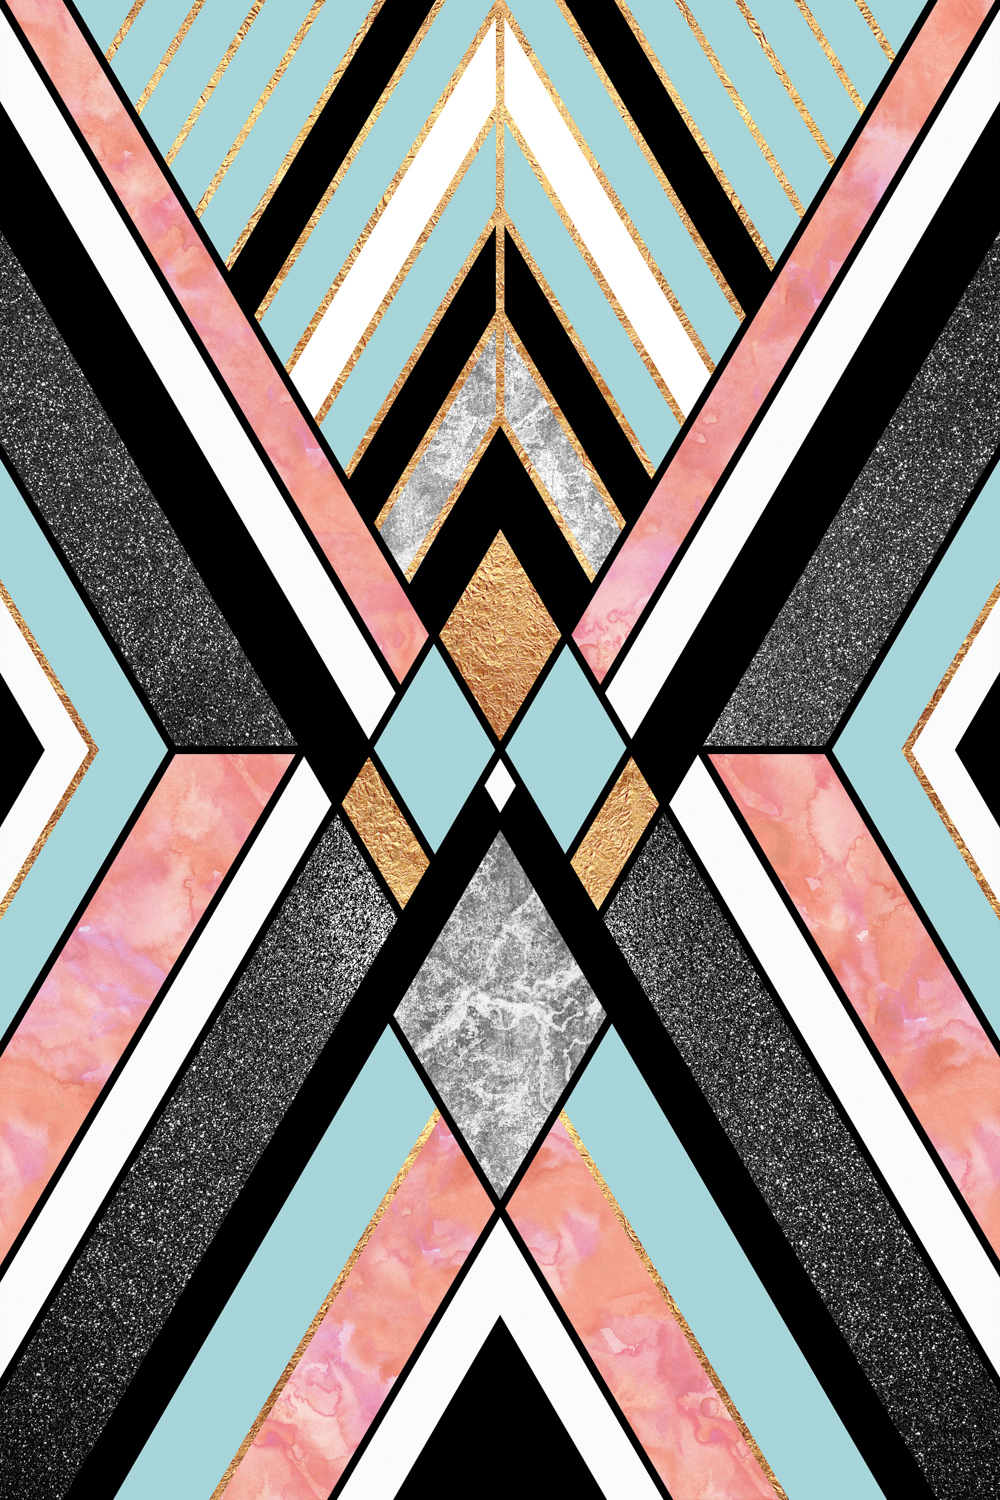 a symmetrical geometric print featuring gray, black, pink, gold, and blue